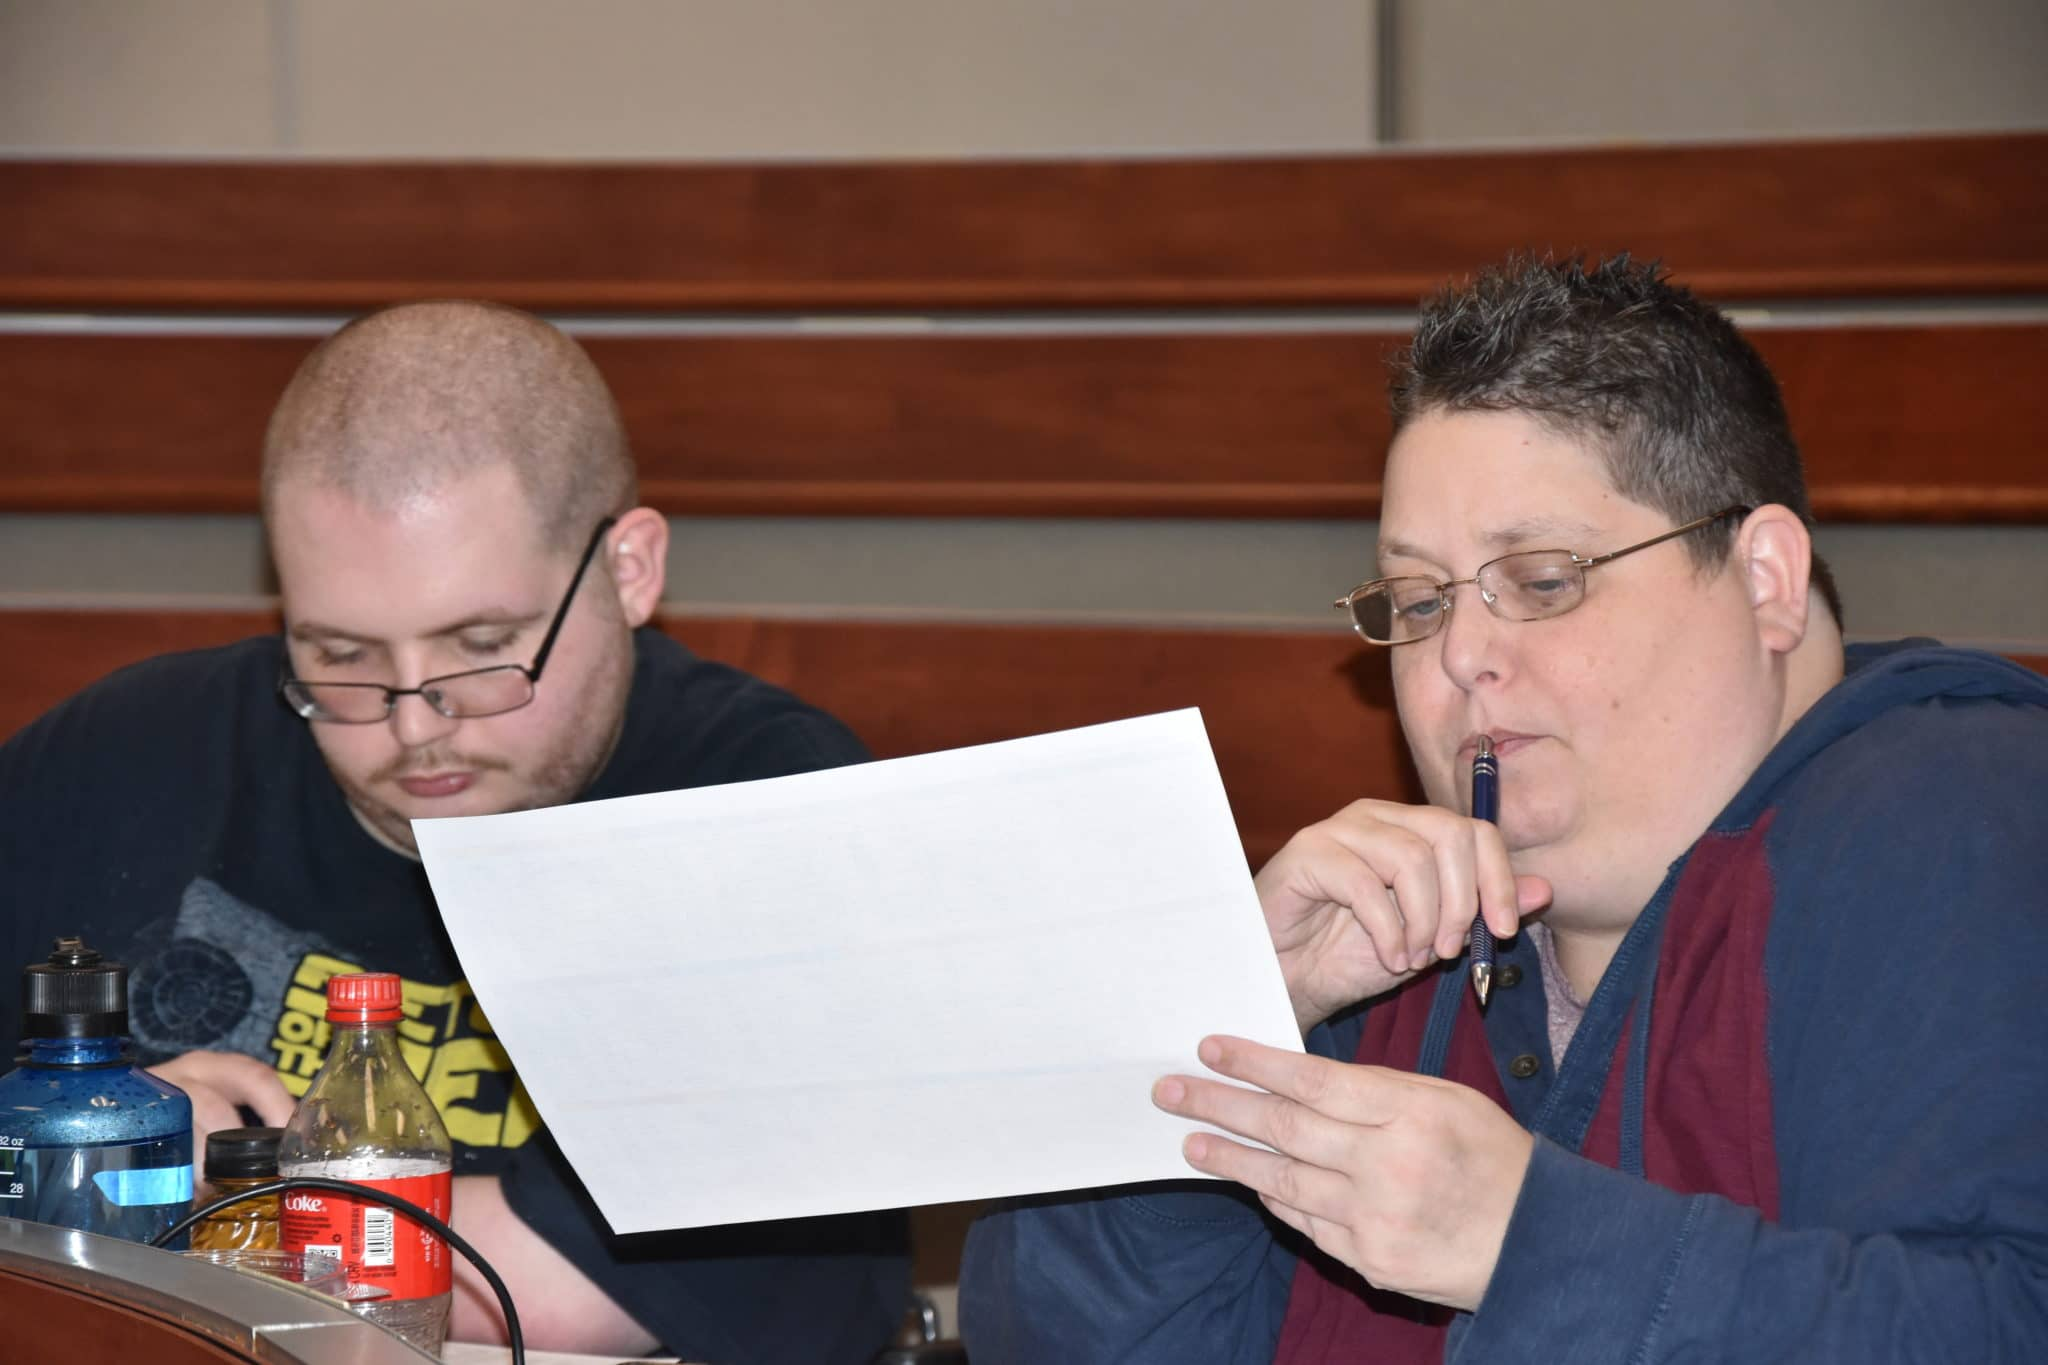 A mentor looks at a piece of a paper while their athlete-leader studies their notes during an Athlete Leadership class